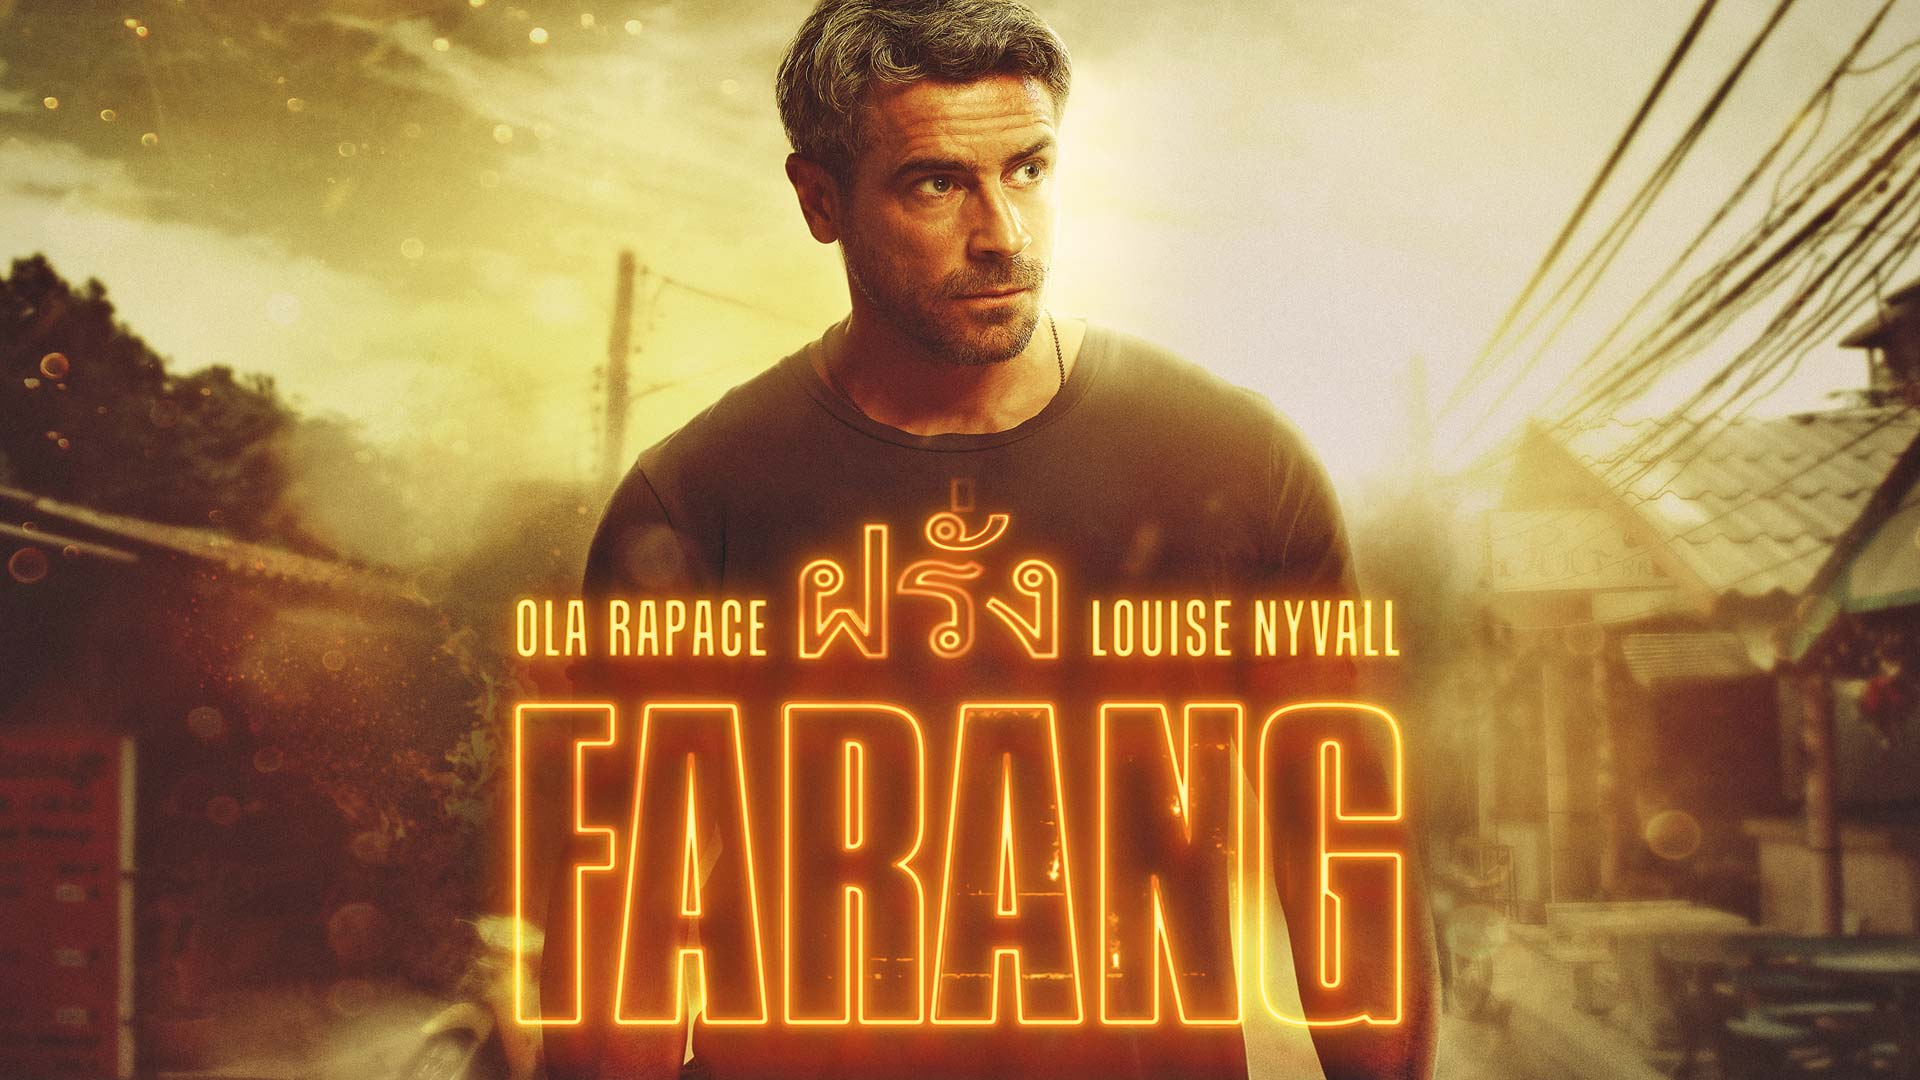 Farang Red Arrow Studios International Ola Rapace